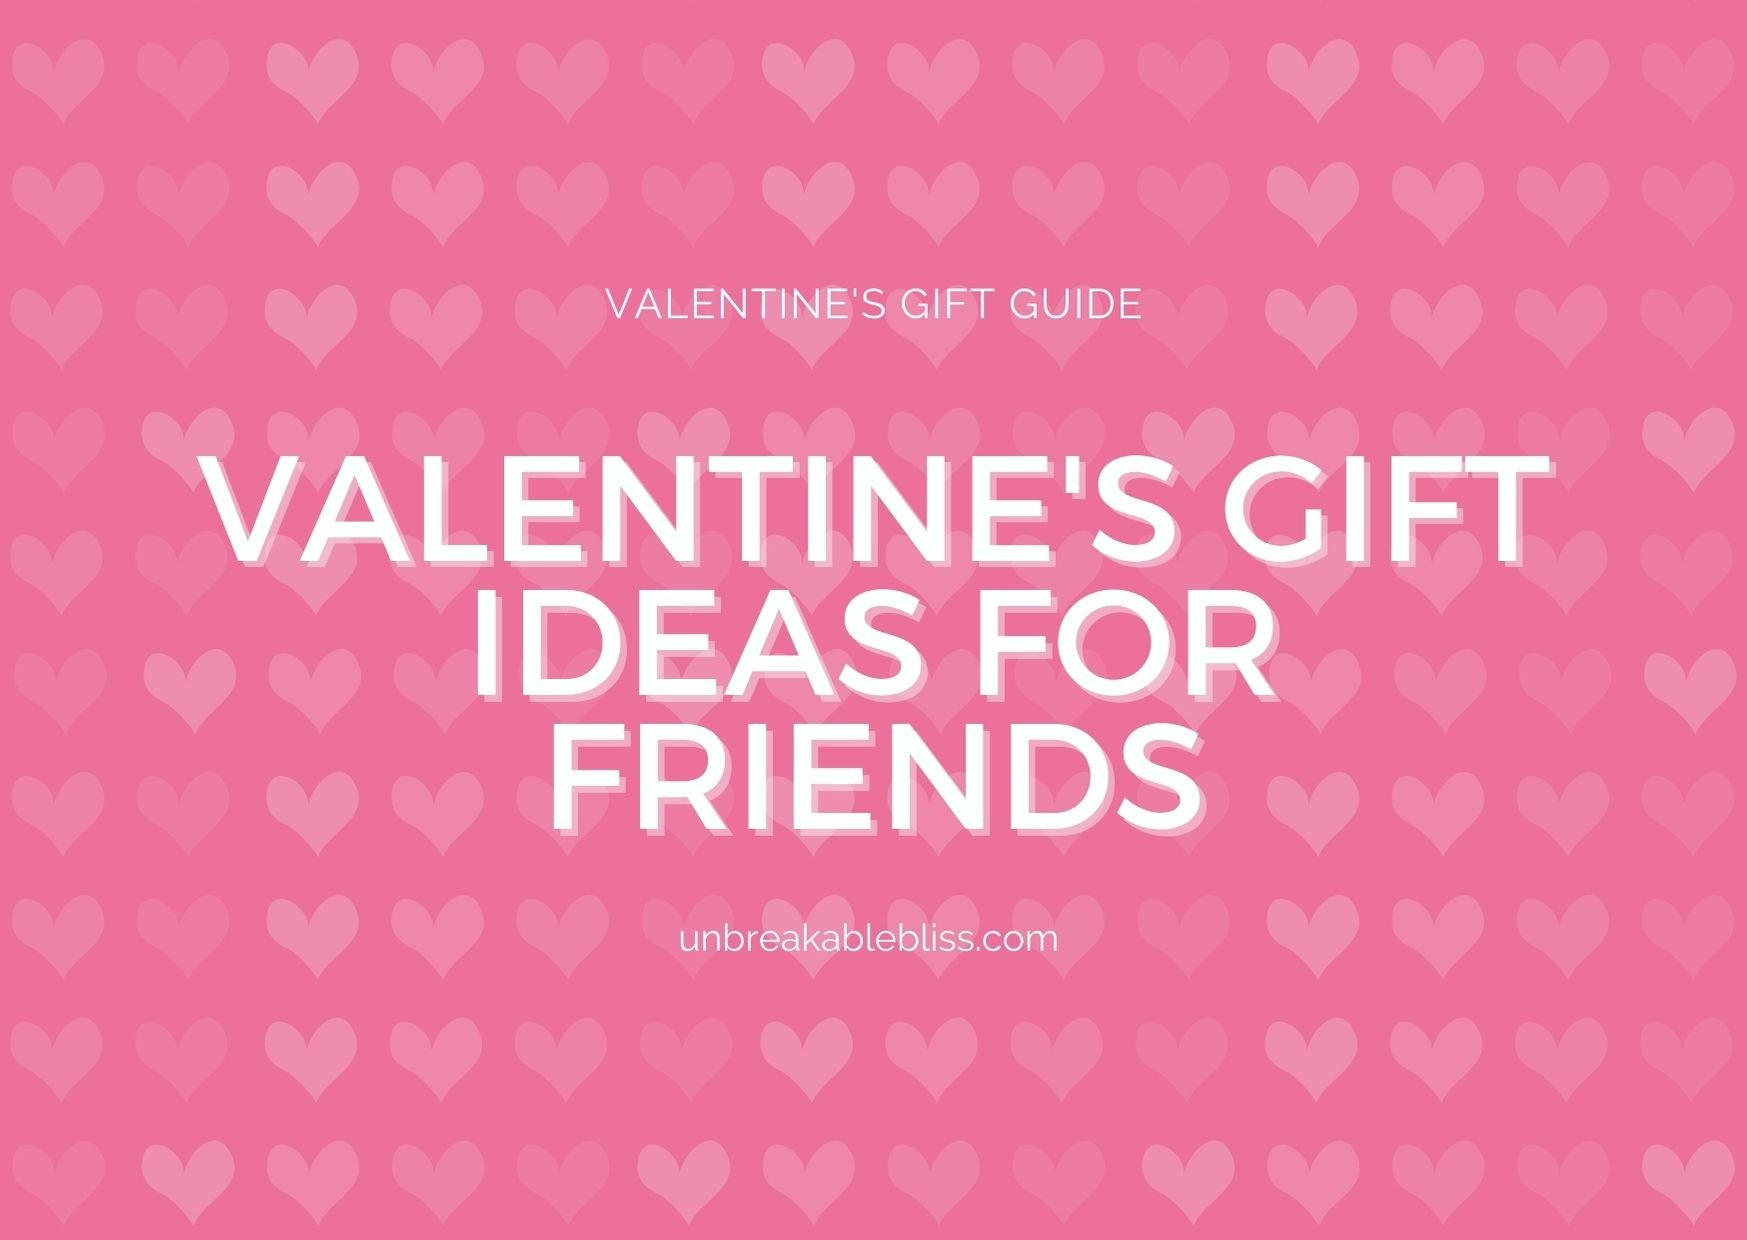 12 Valentine's Day Gifts For Friends: Gift Guide